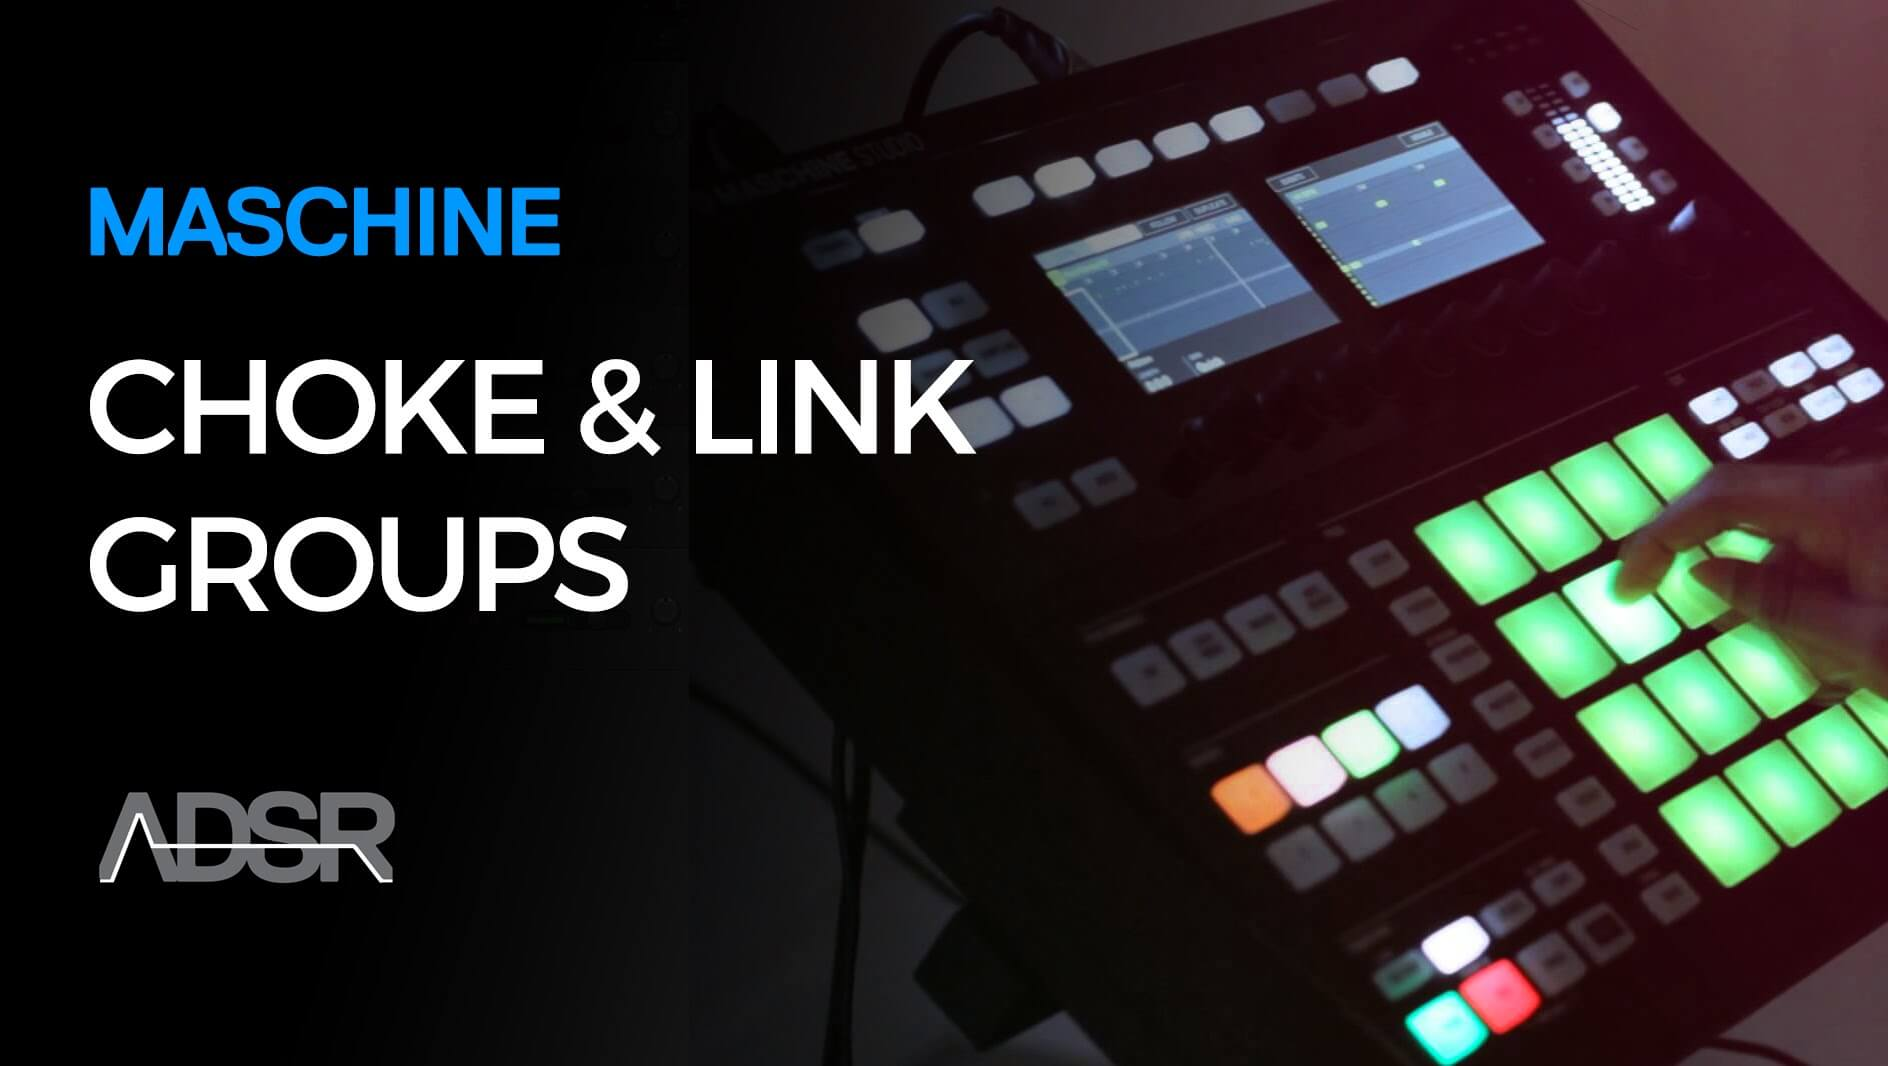 Using Choke & Link Groups on Maschine